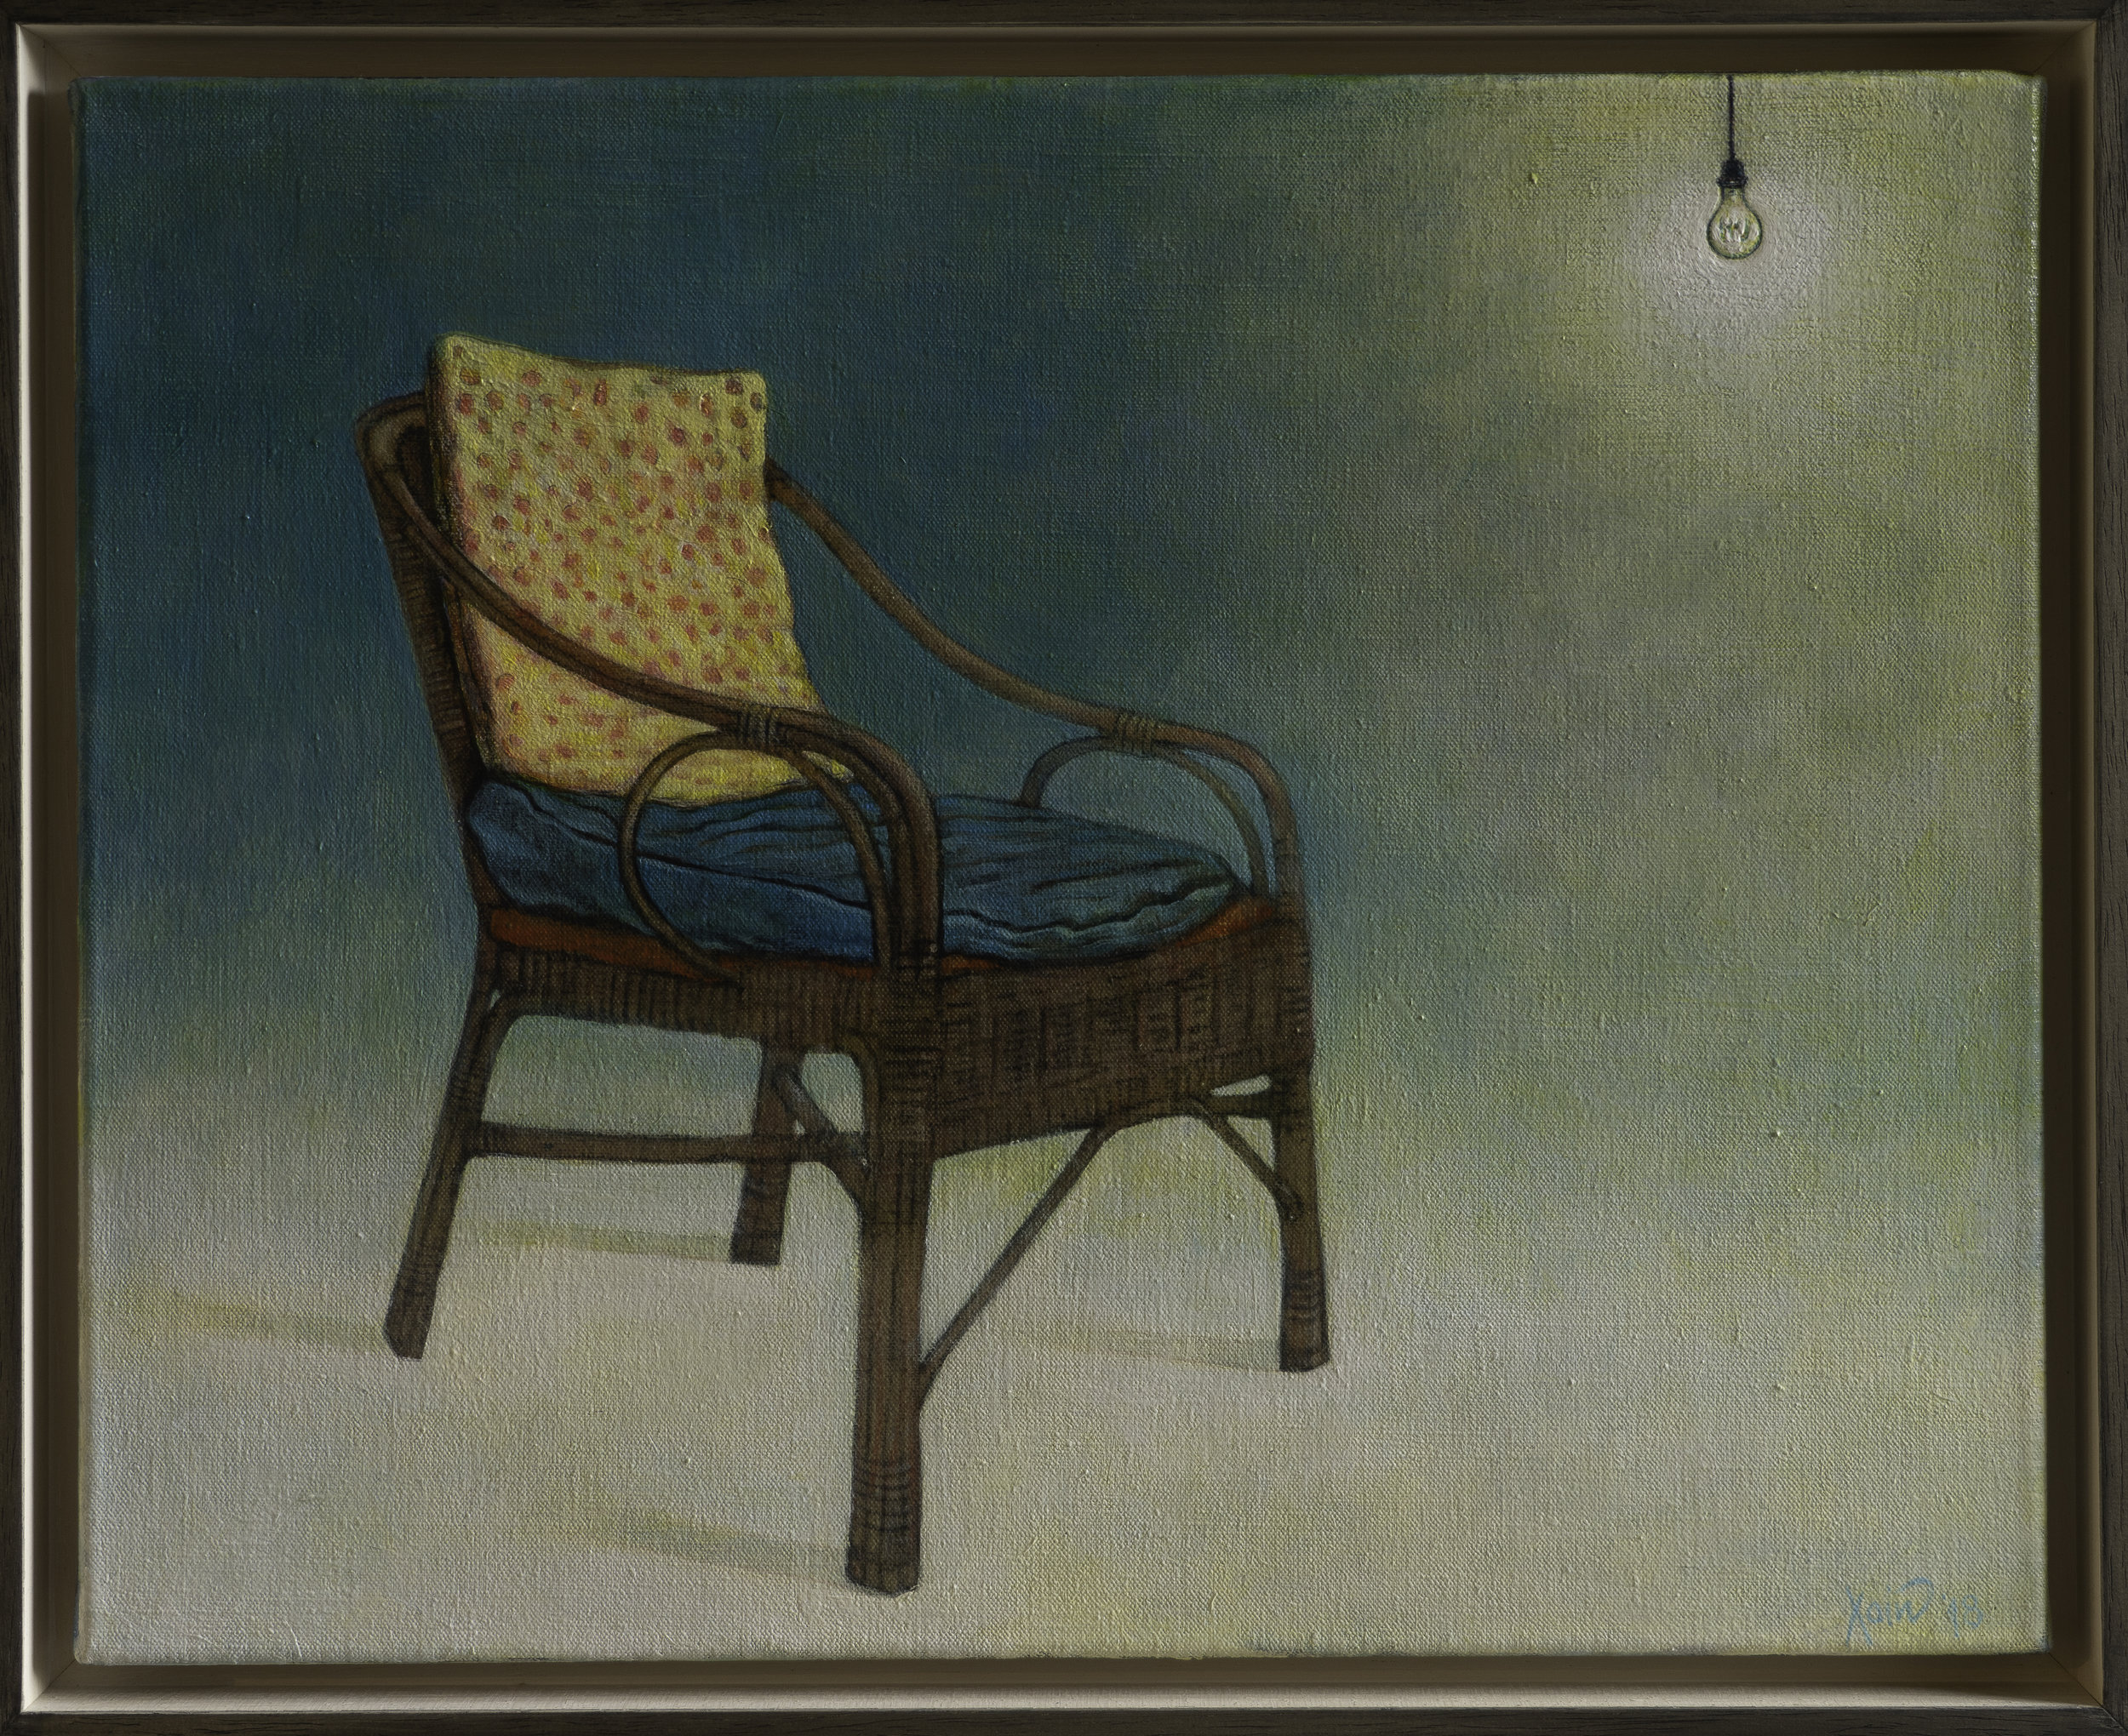 """""""Old chair with lightbulb"""" 50cm x 40cm (Framed) Charcoal and acrylic on linen, 2018."""